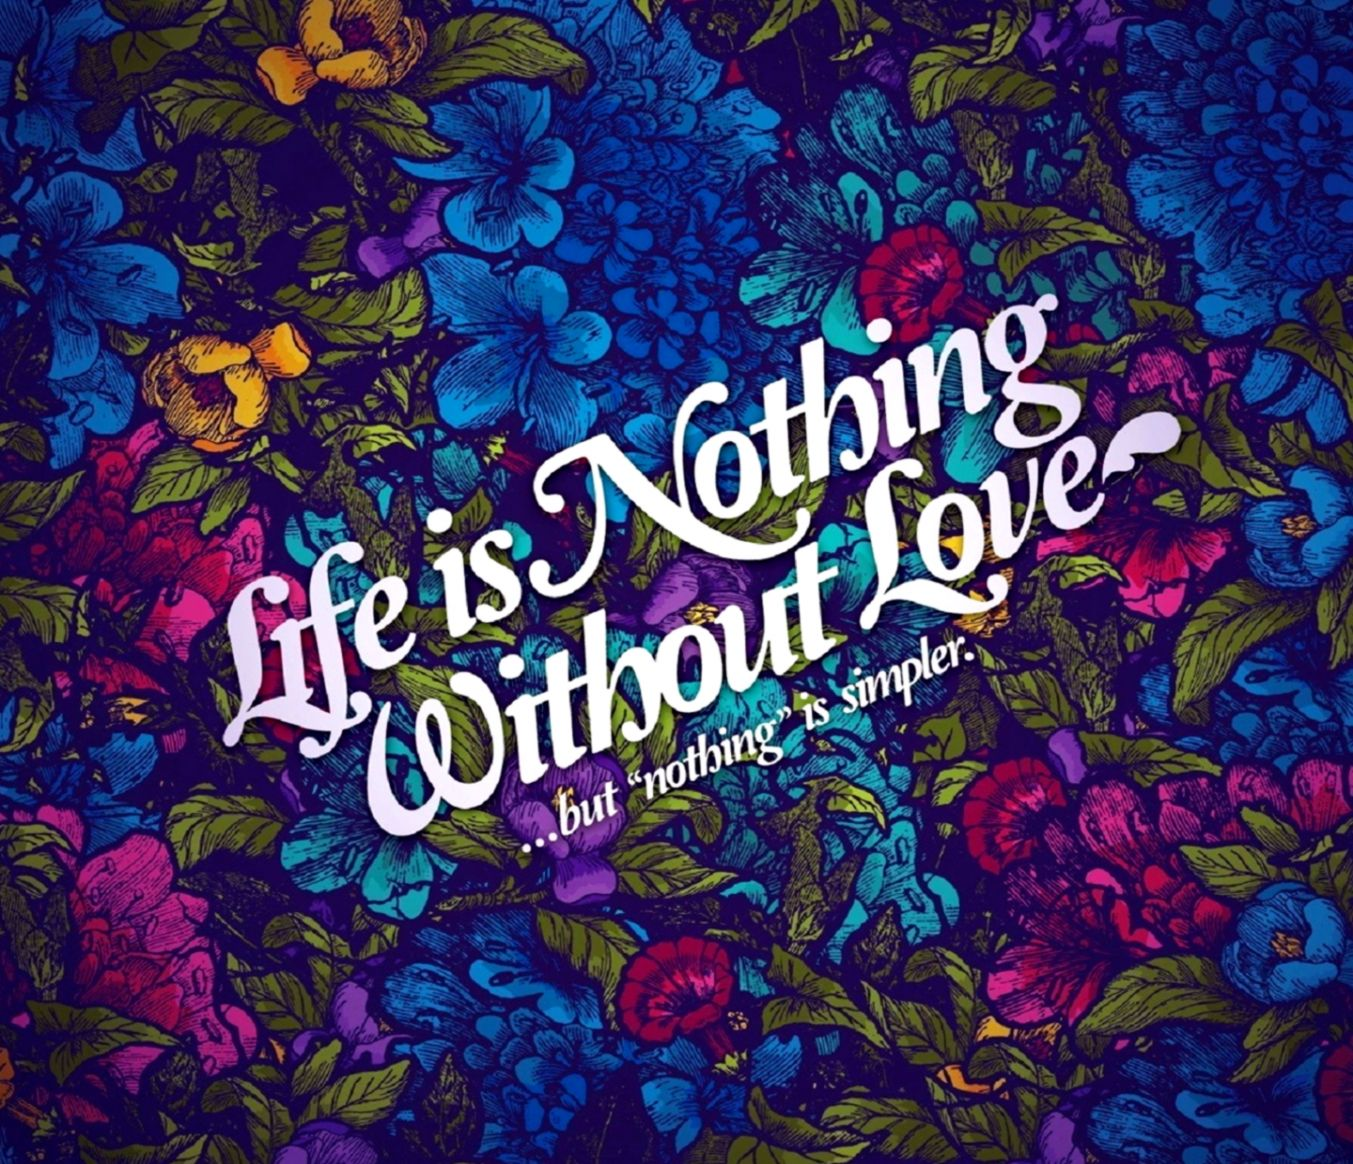 Love Wallpaper Background Hd For Pc Mobile Phone Free Life Is Nothing Without Love But Nothing 1353x1164 Wallpaper Teahub Io